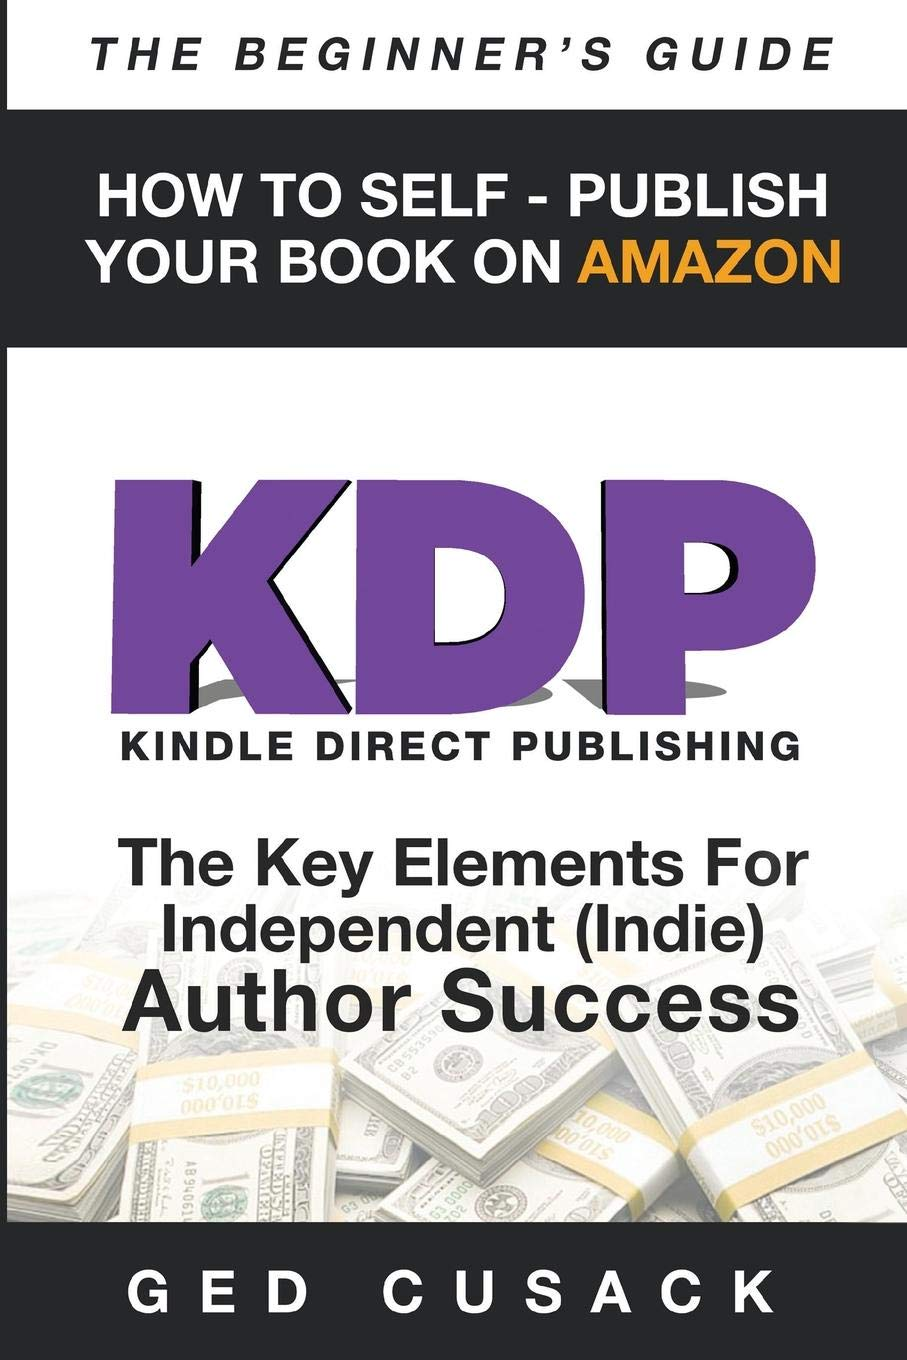 KDP - How To Self - Publish Your  Book On Amazon - The Beginner's Guide: The key elements for Independent  (Indie) author success: Volume 4 (Financial Freedom Beginners Guides) por Ged Cusack